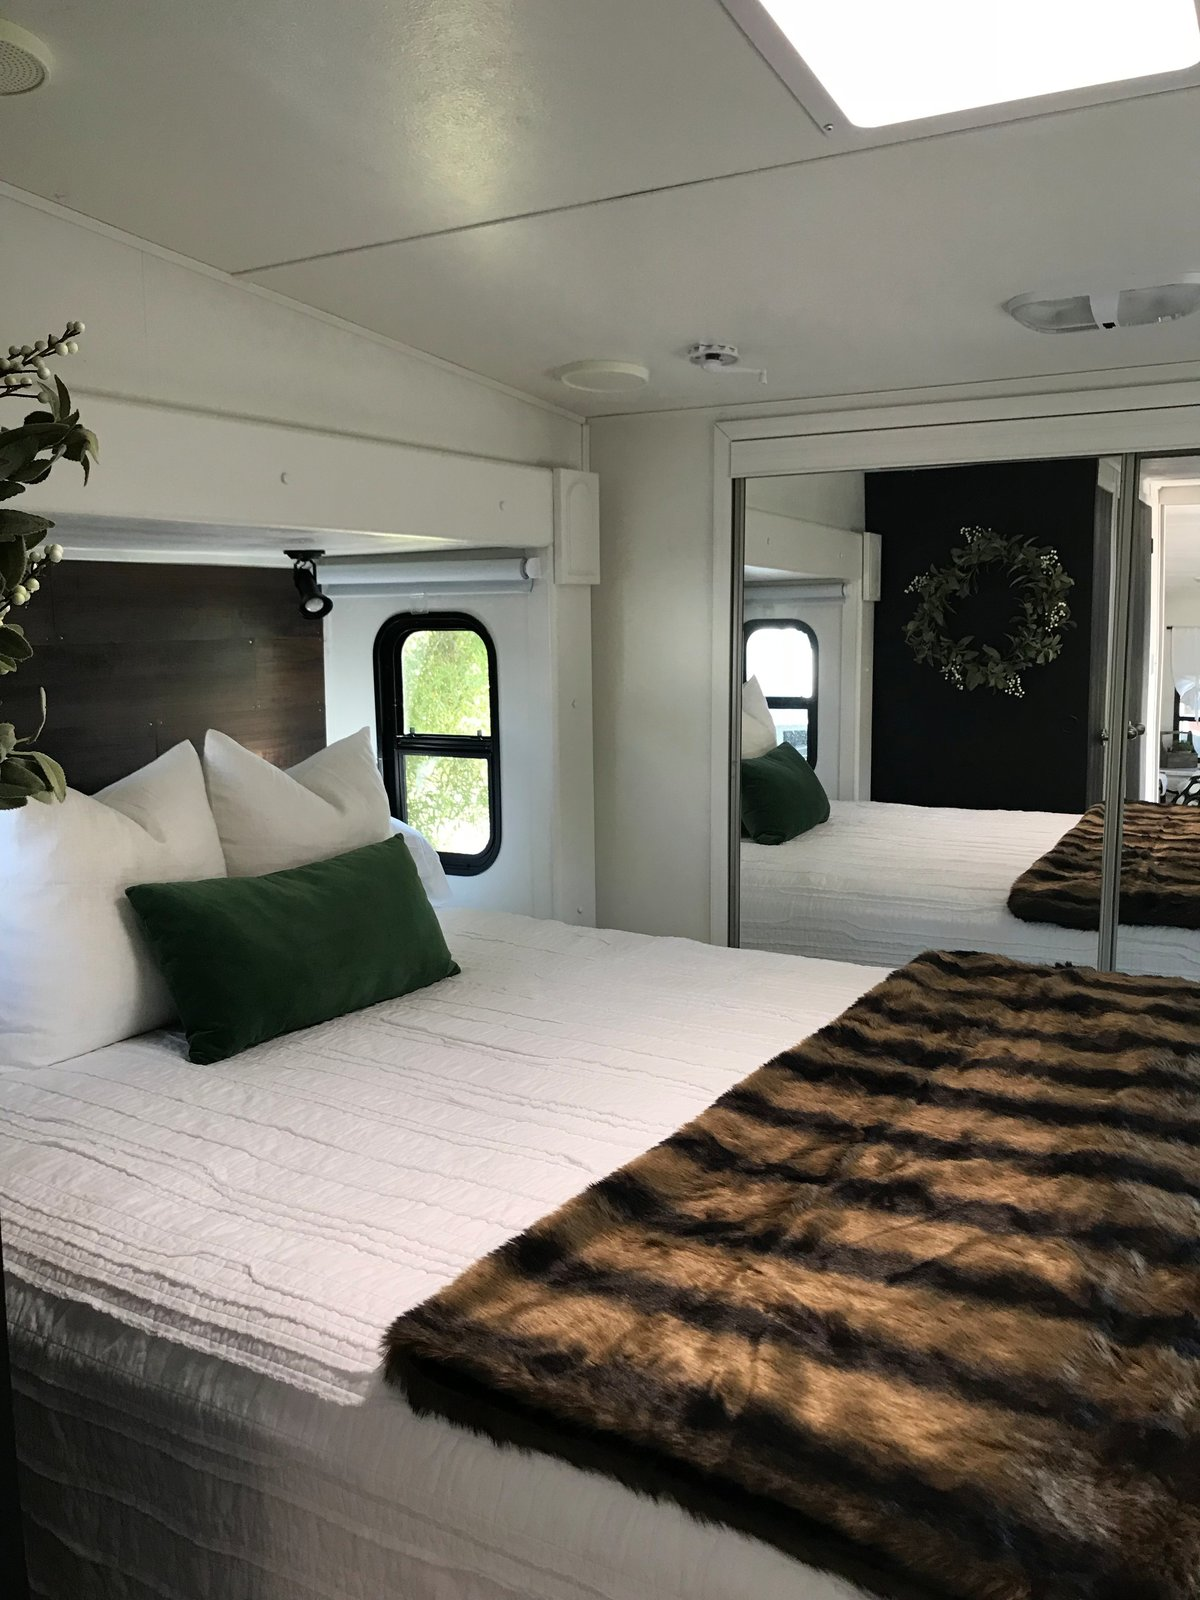 Bedroom, Bed, Wardrobe, and Ceiling Lighting A skylight window illuminates the bedroom, which appears larger than it is because of the closet with mirror-clad sliding doors.  Photo 6 of 16 in Hit the Road With This Chic Camper on Sale For $28K